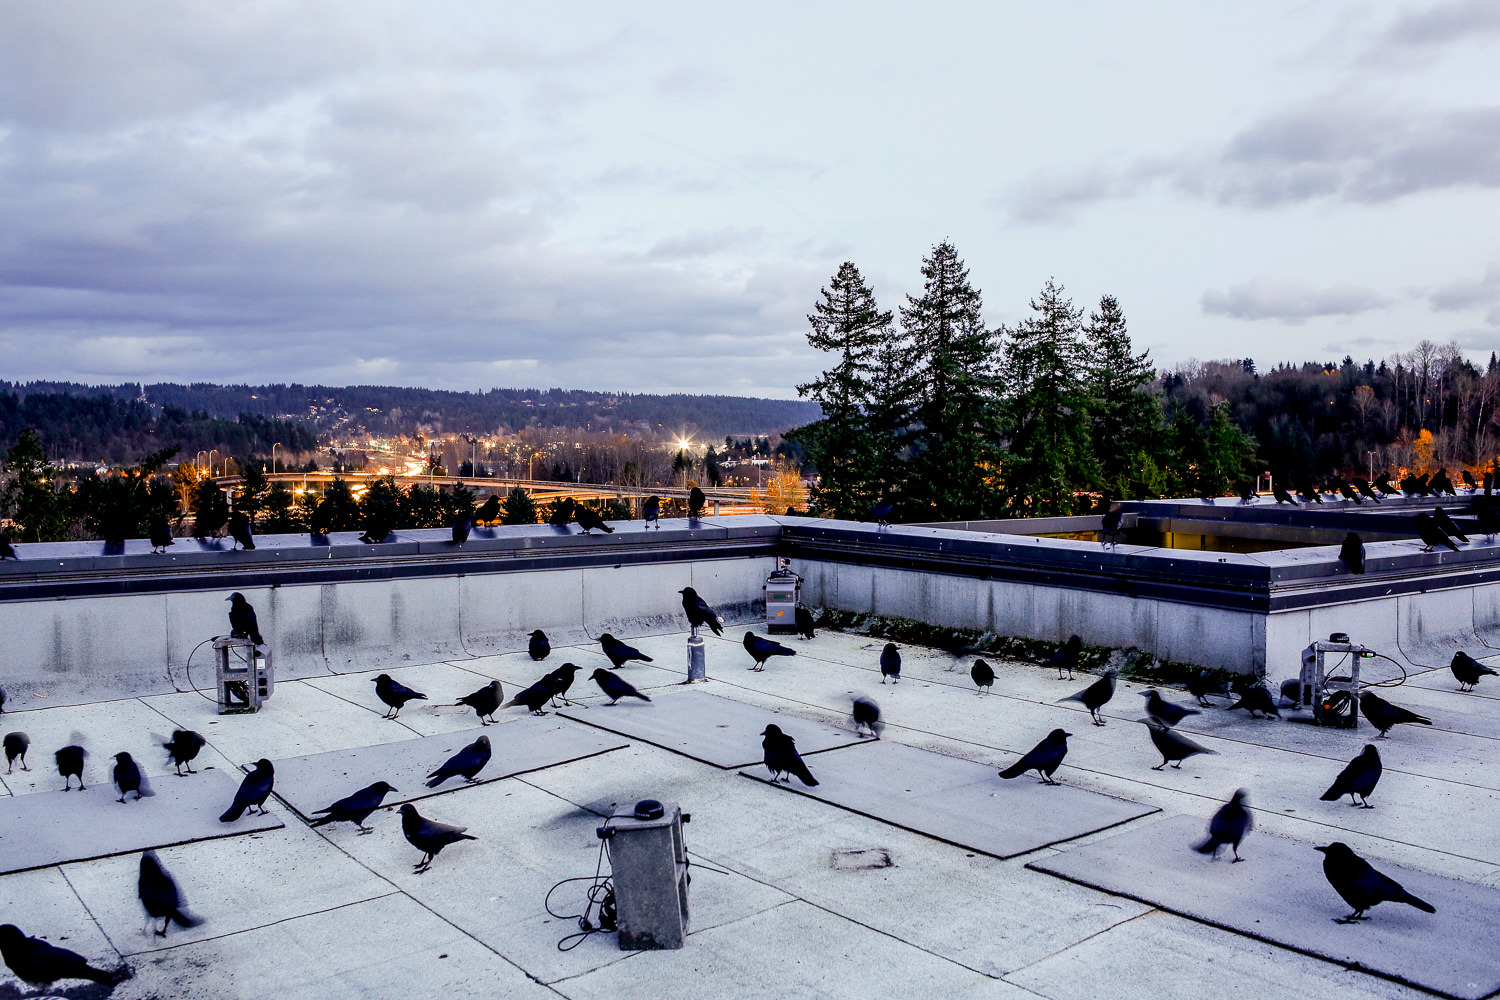 crows on the roof